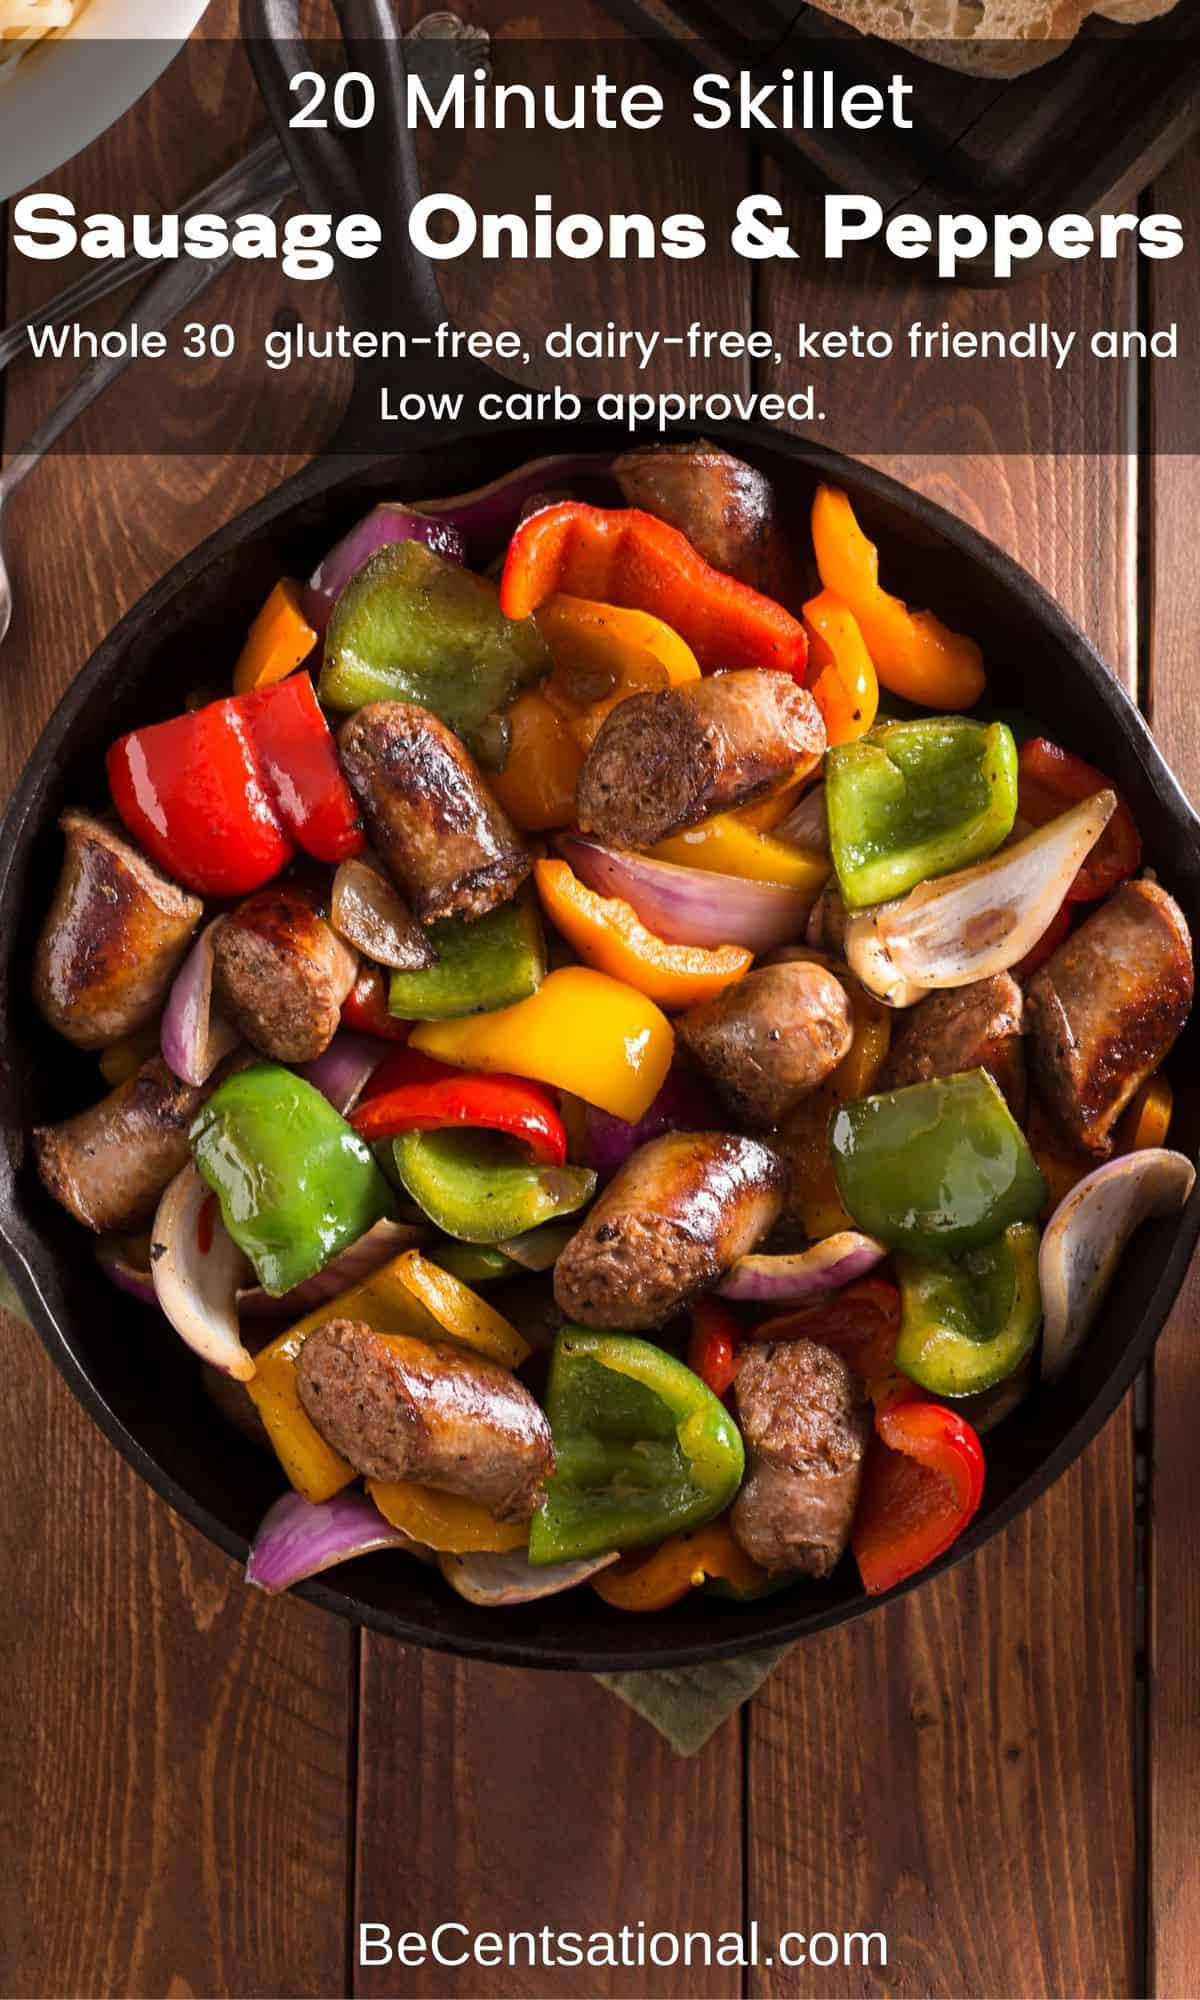 Skillet Sausage with Onions and Peppers - 20 Minute